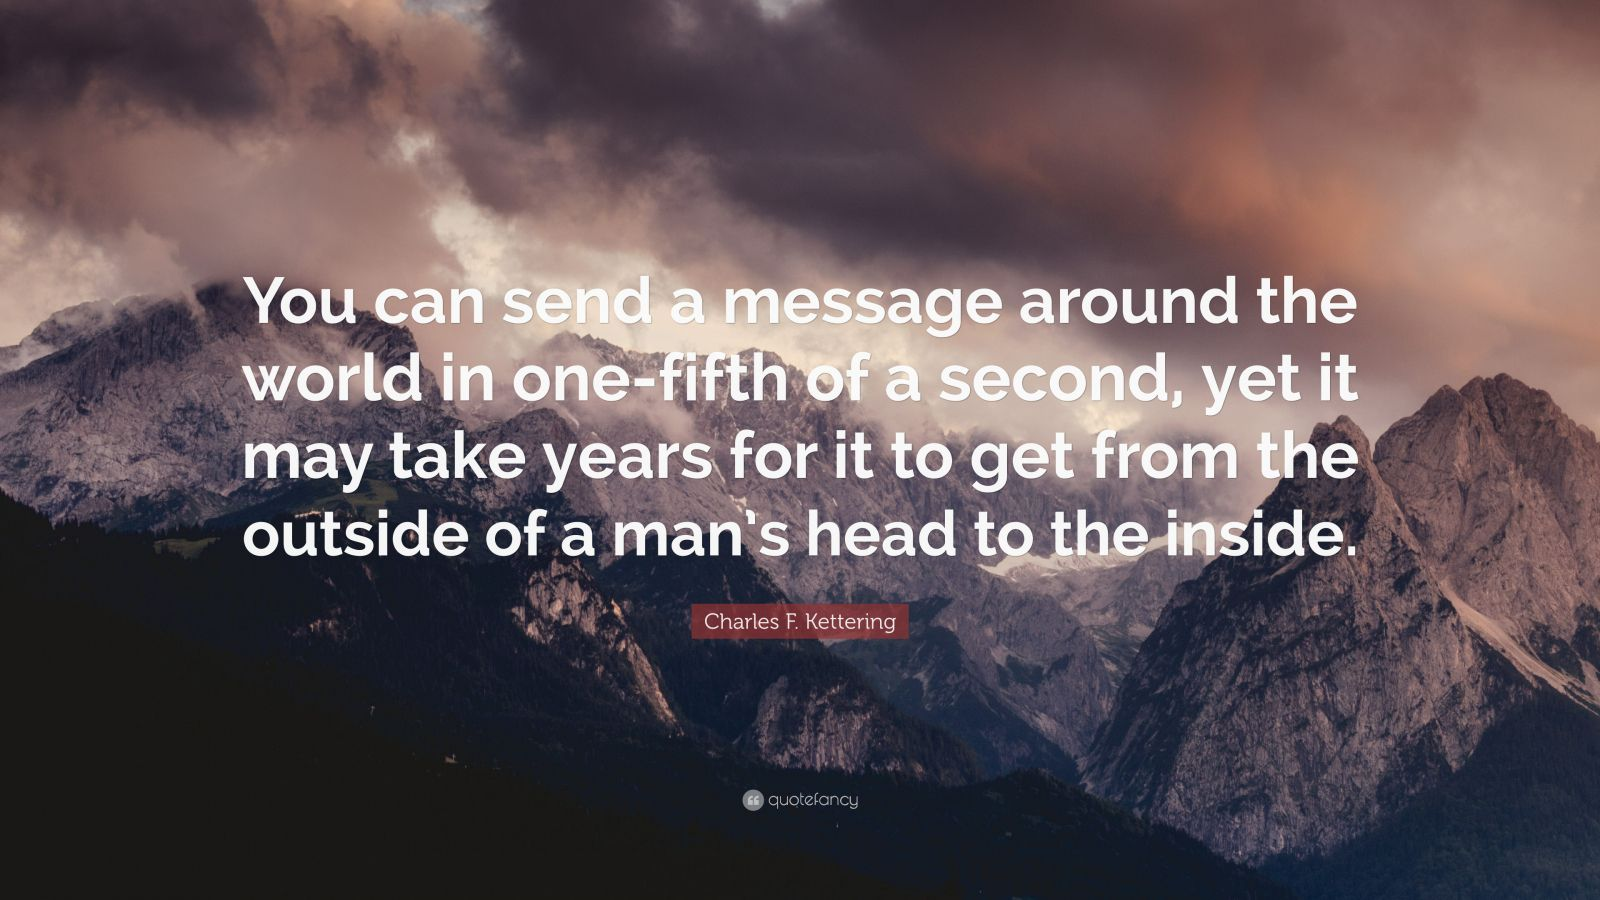 """Charles F. Kettering Quote: """"You can send a message around the world in one-fifth of a second, yet it may take years for it to get from the outside of a man's head to the inside."""""""